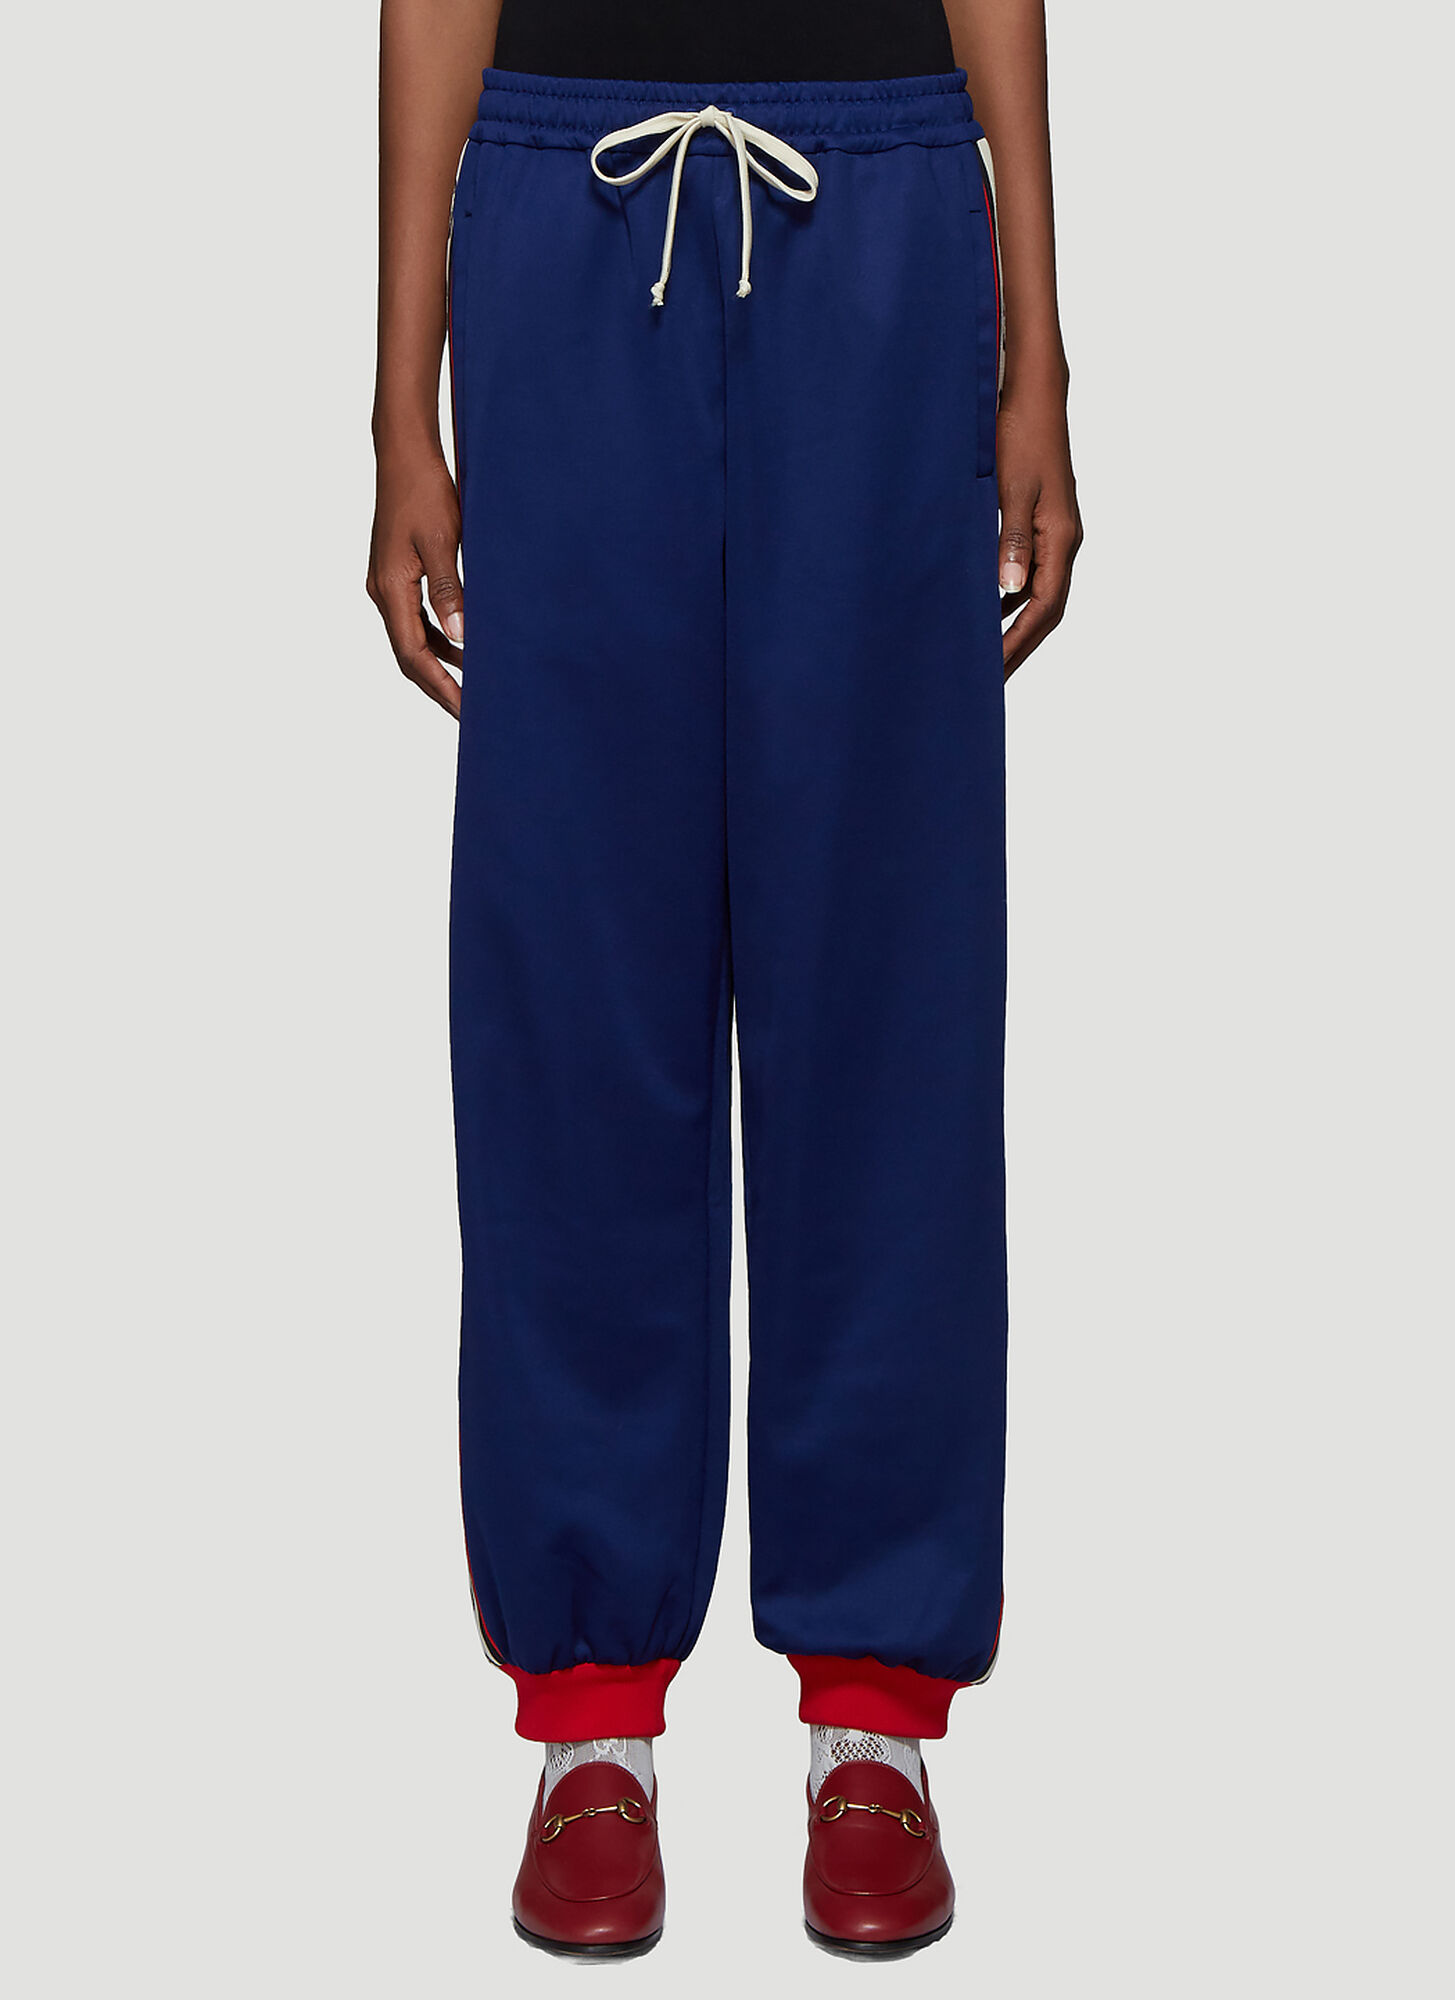 Gucci GG Trim Track Pants in Blue